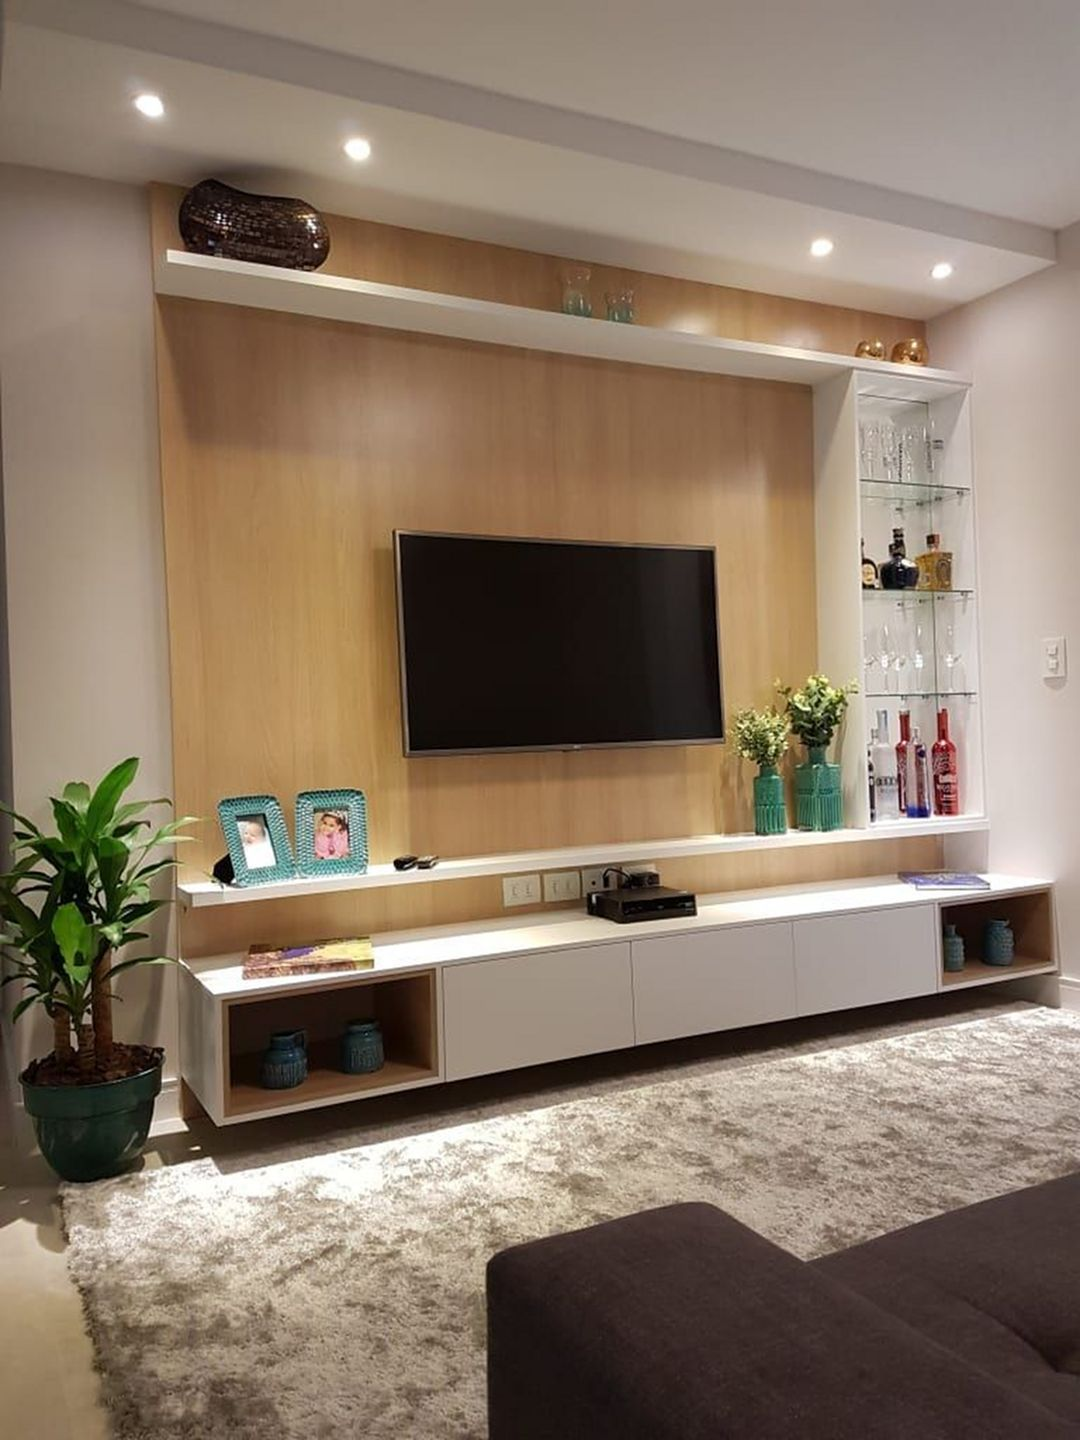 Awesome 35 amazing wall tv cabinet designs for cozy family room https goodsgn